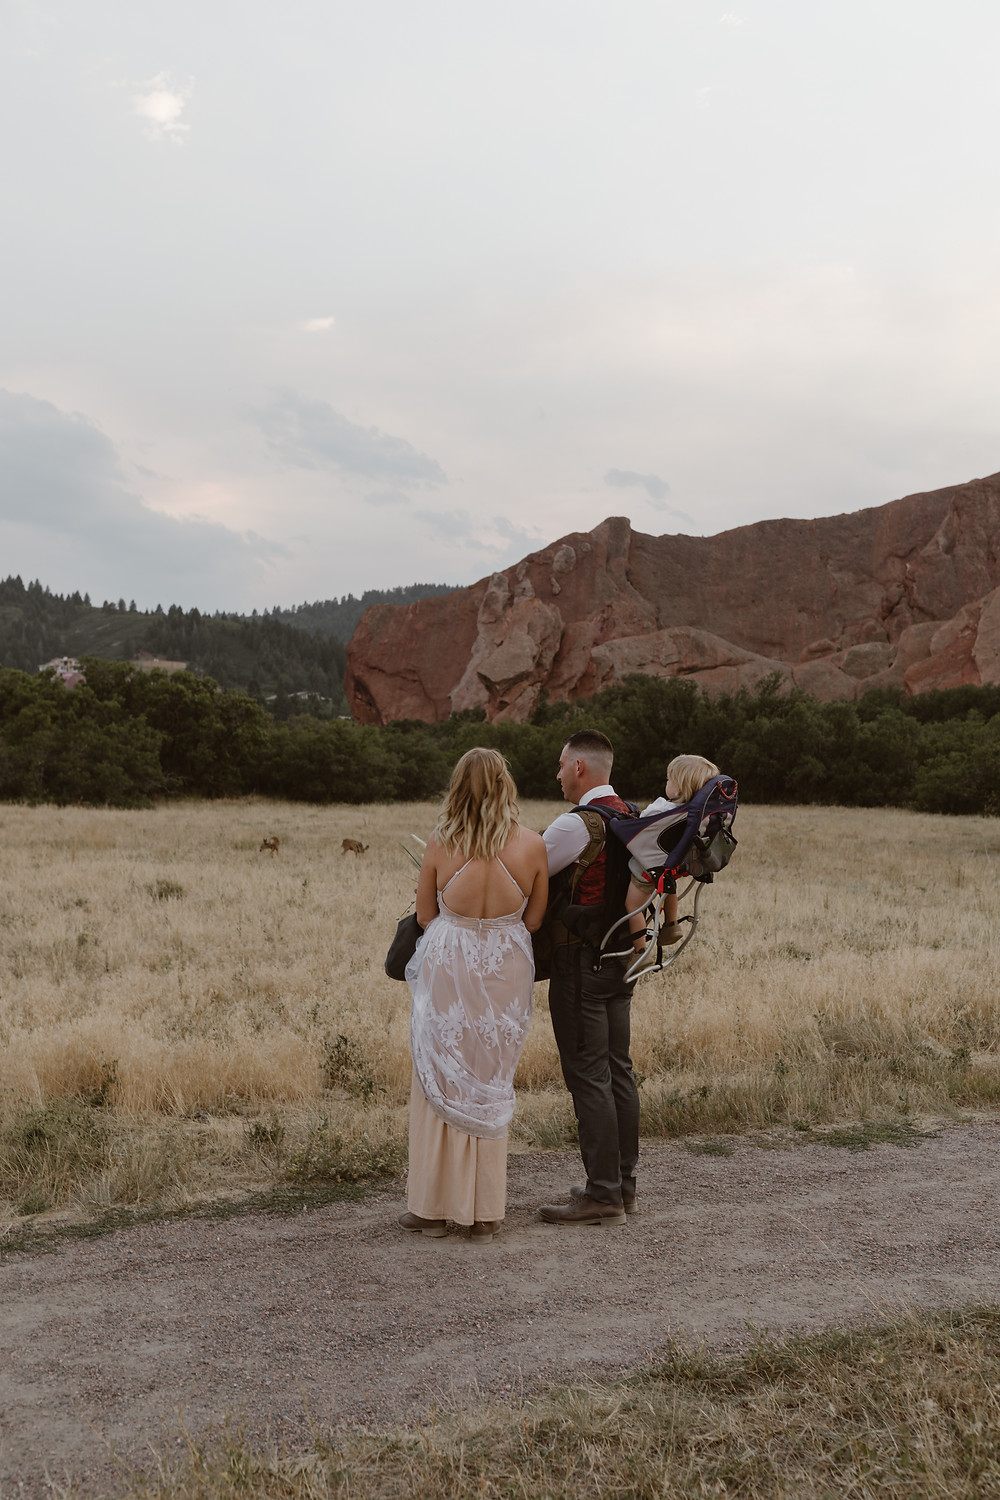 family viewing wildlife on their elopement day